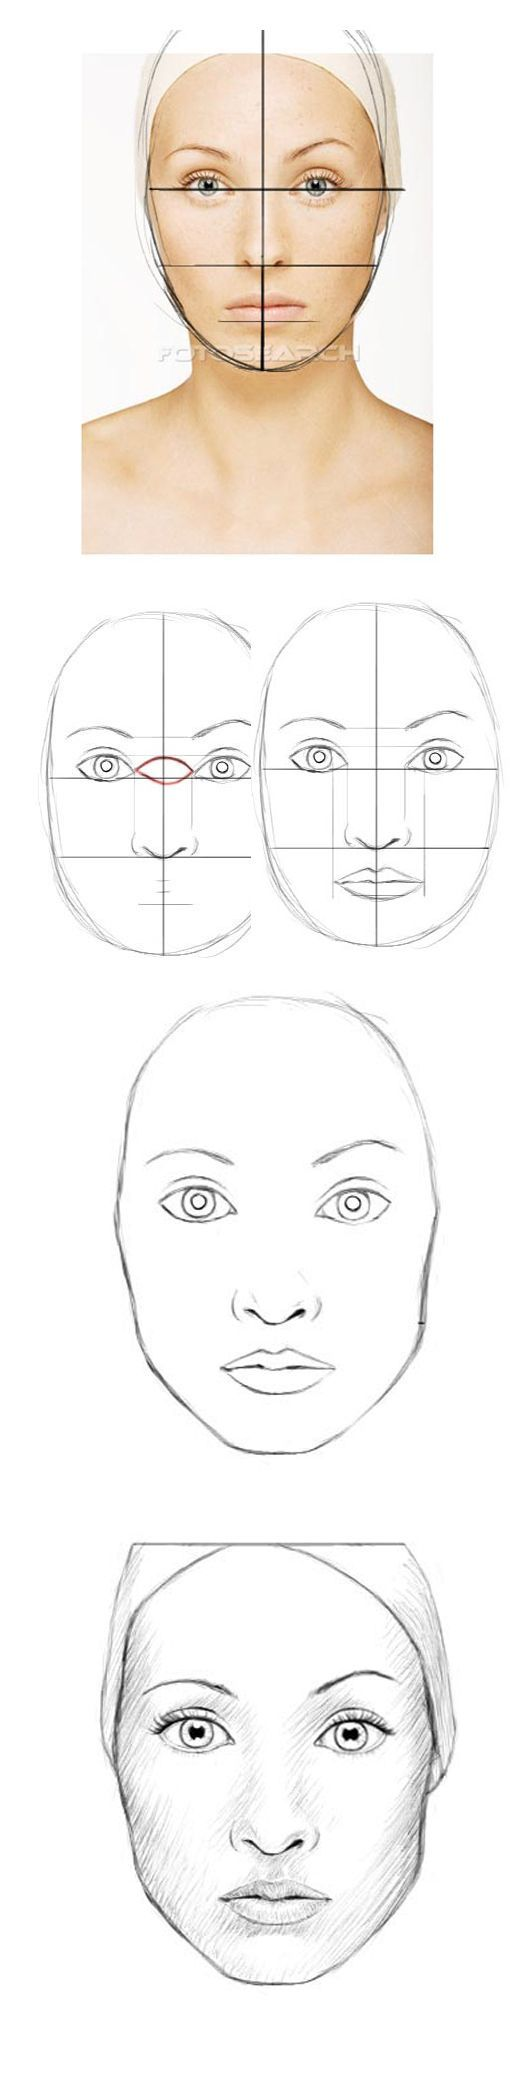 http://sharenoesis.com/article/draw-face/84